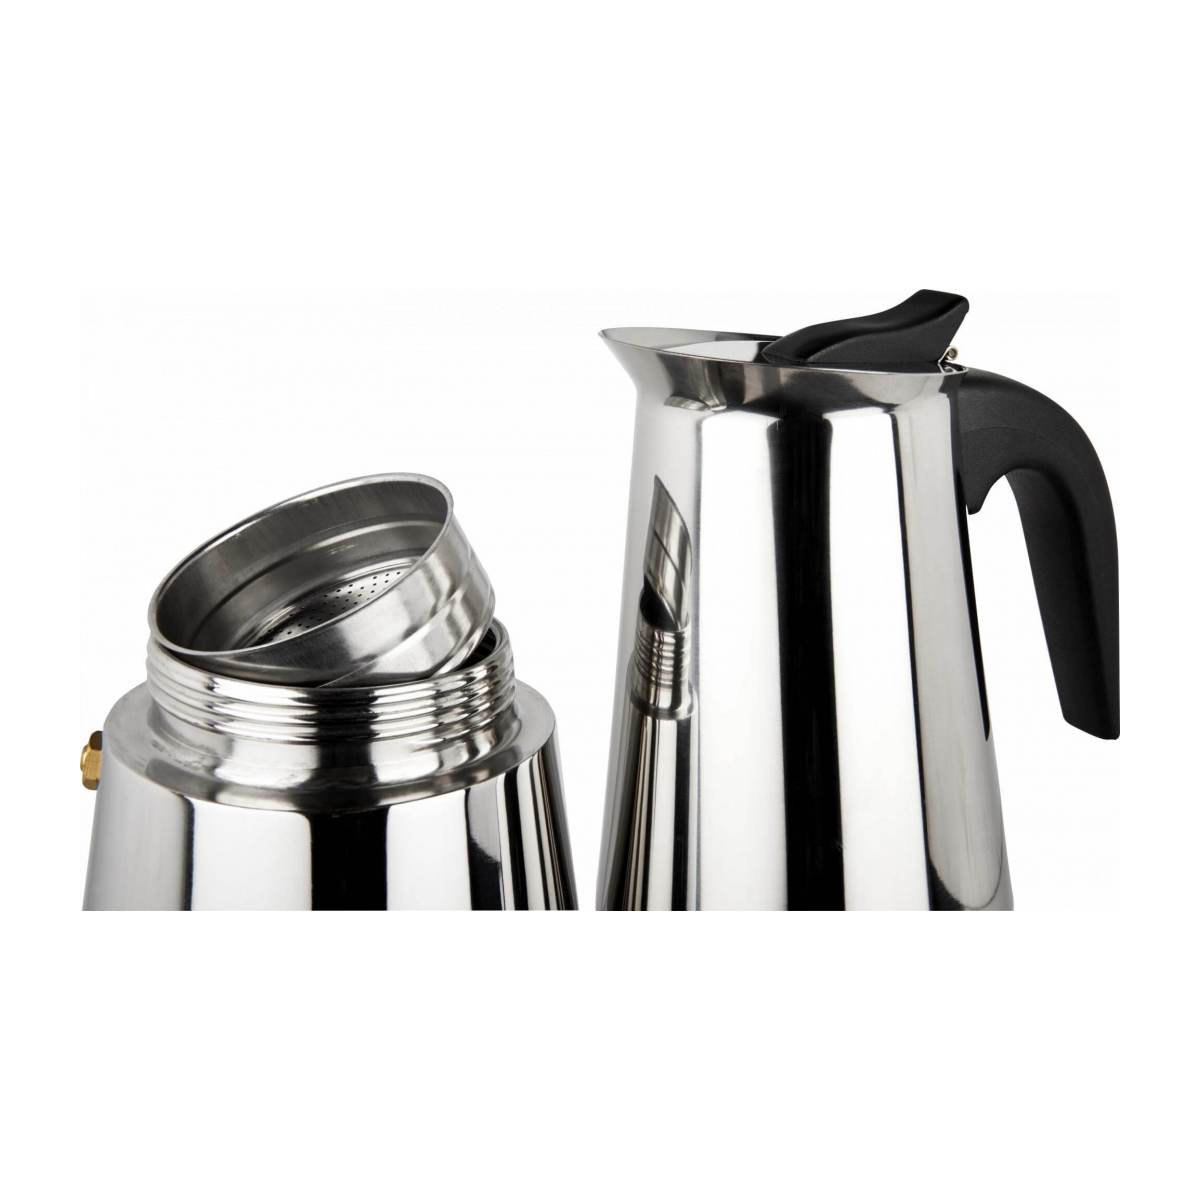 Stainless steel coffee maker n°8